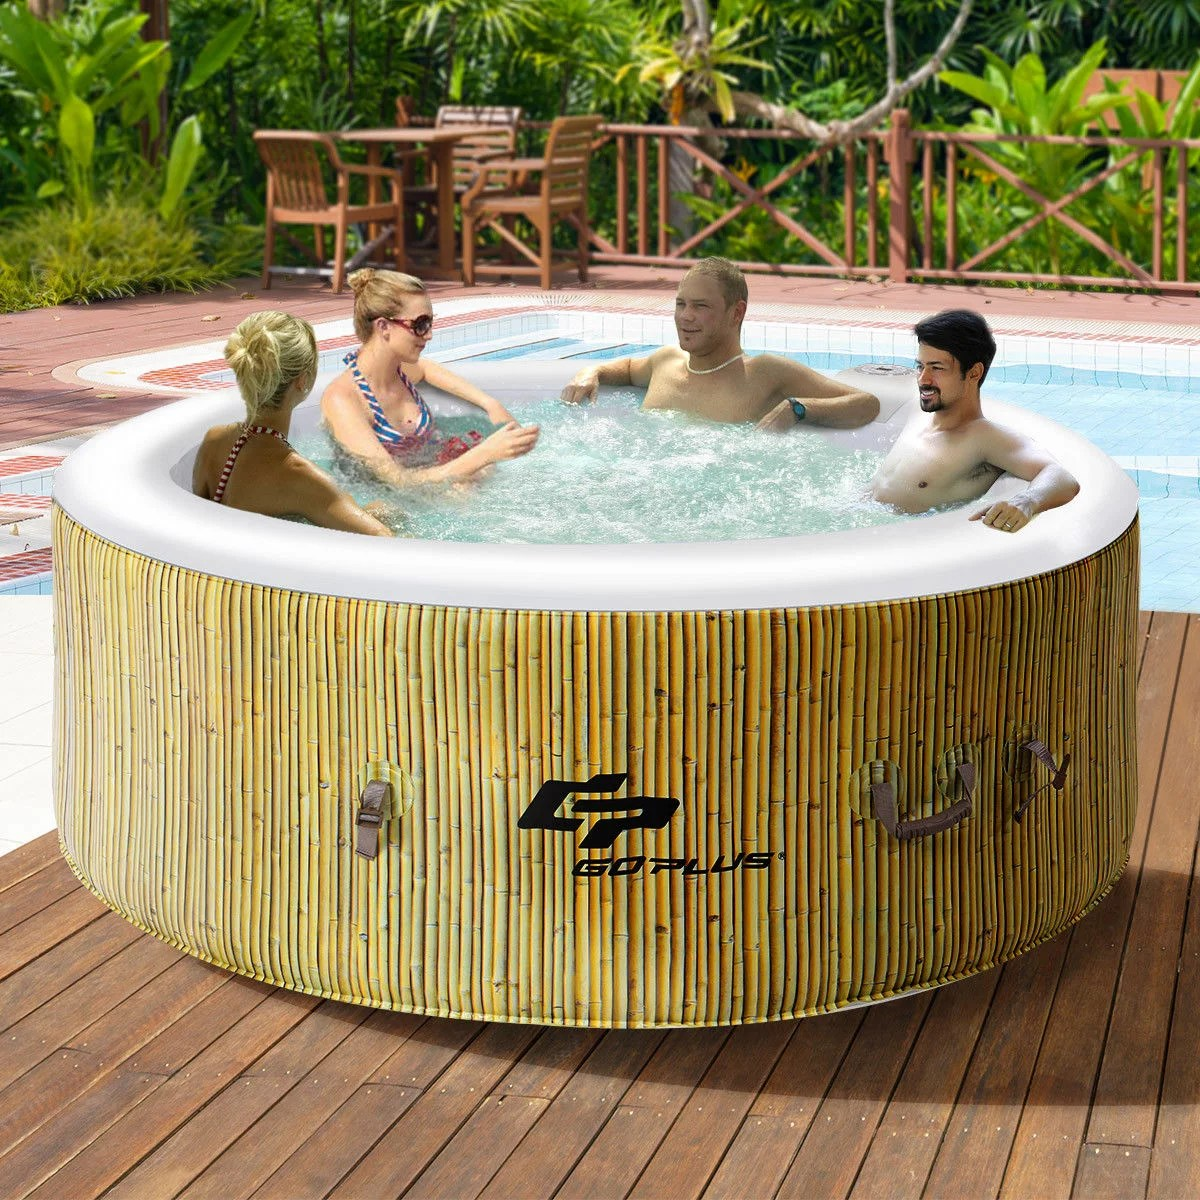 Jacuzzi Oval Pool Costway Goplus 4 Person Inflatable Hot Tub Outdoor Jets